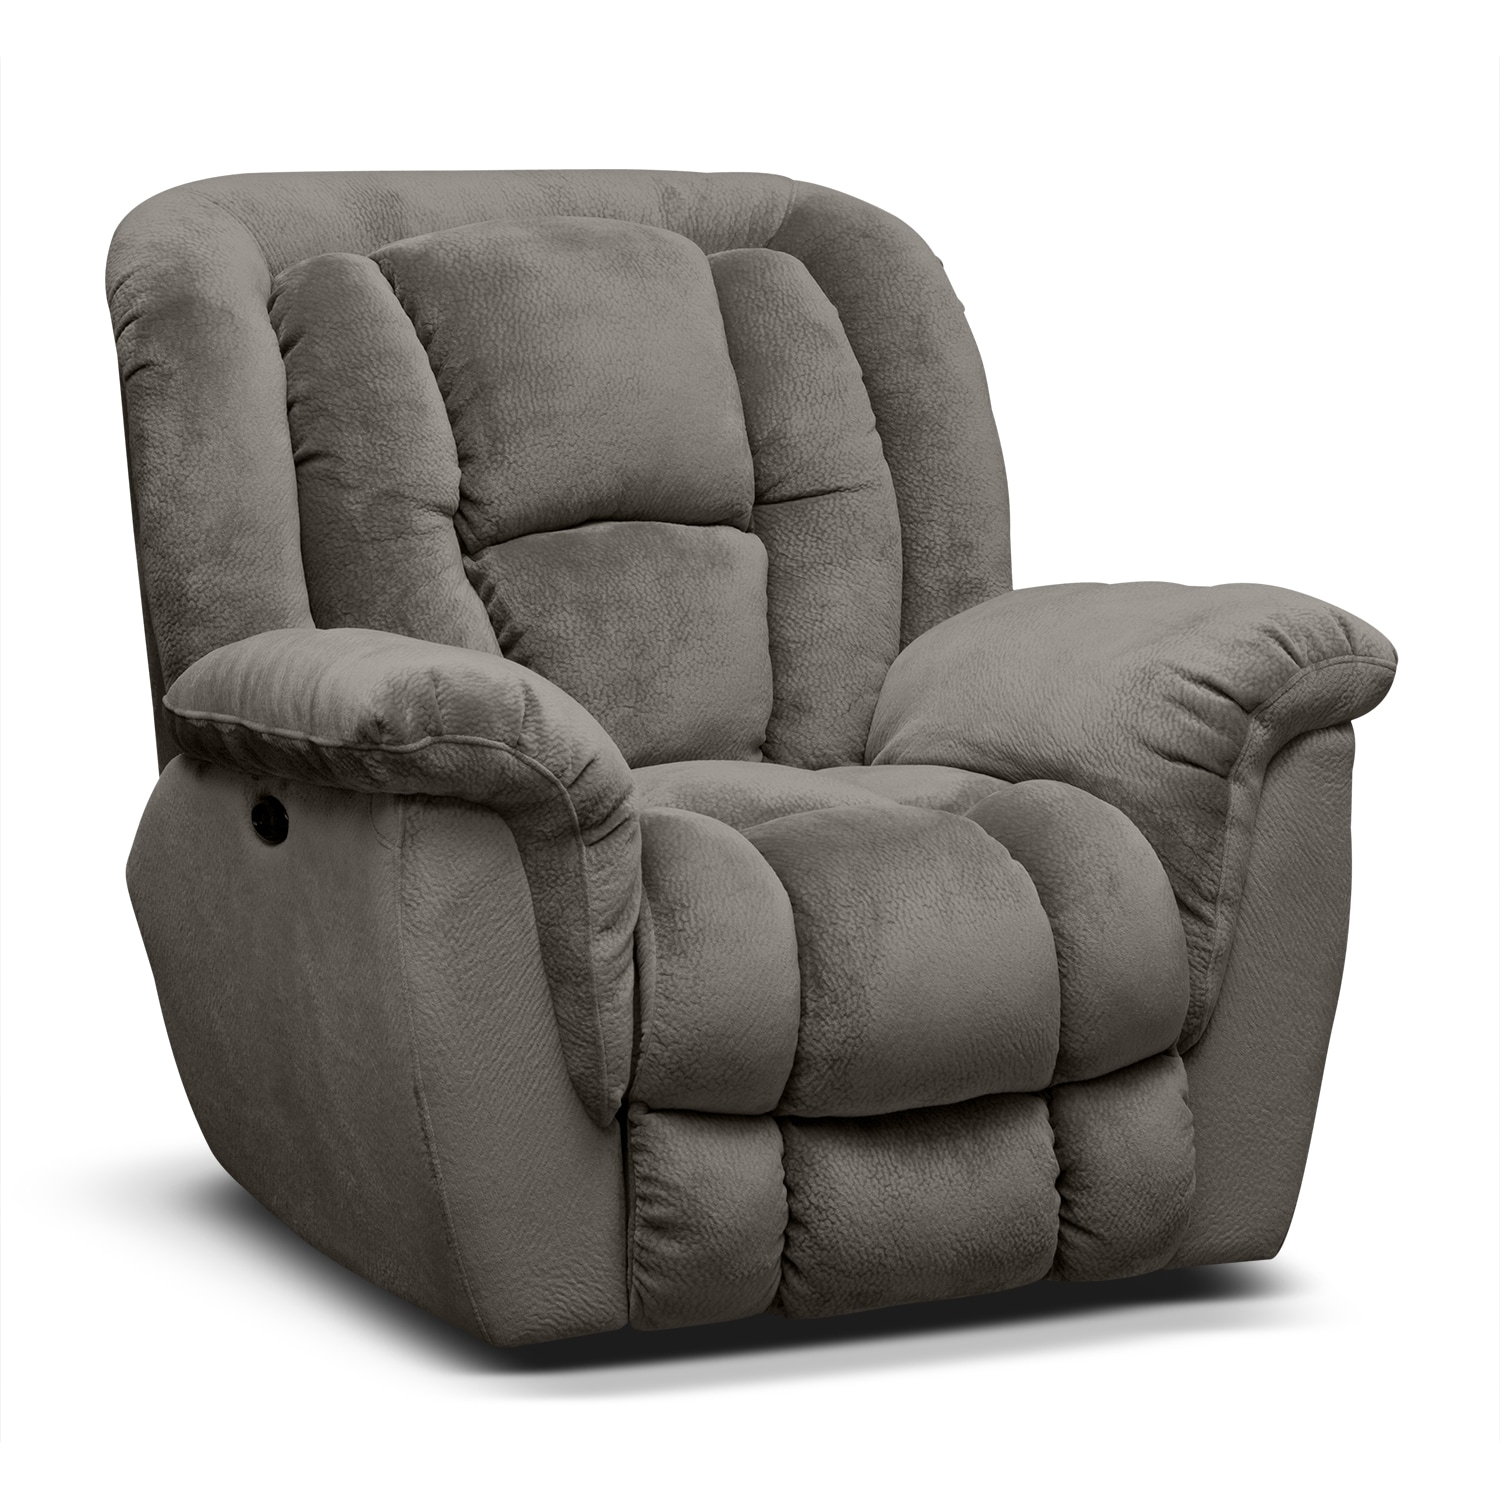 Living Room Furniture - Mammoth Power Recliner - Gray